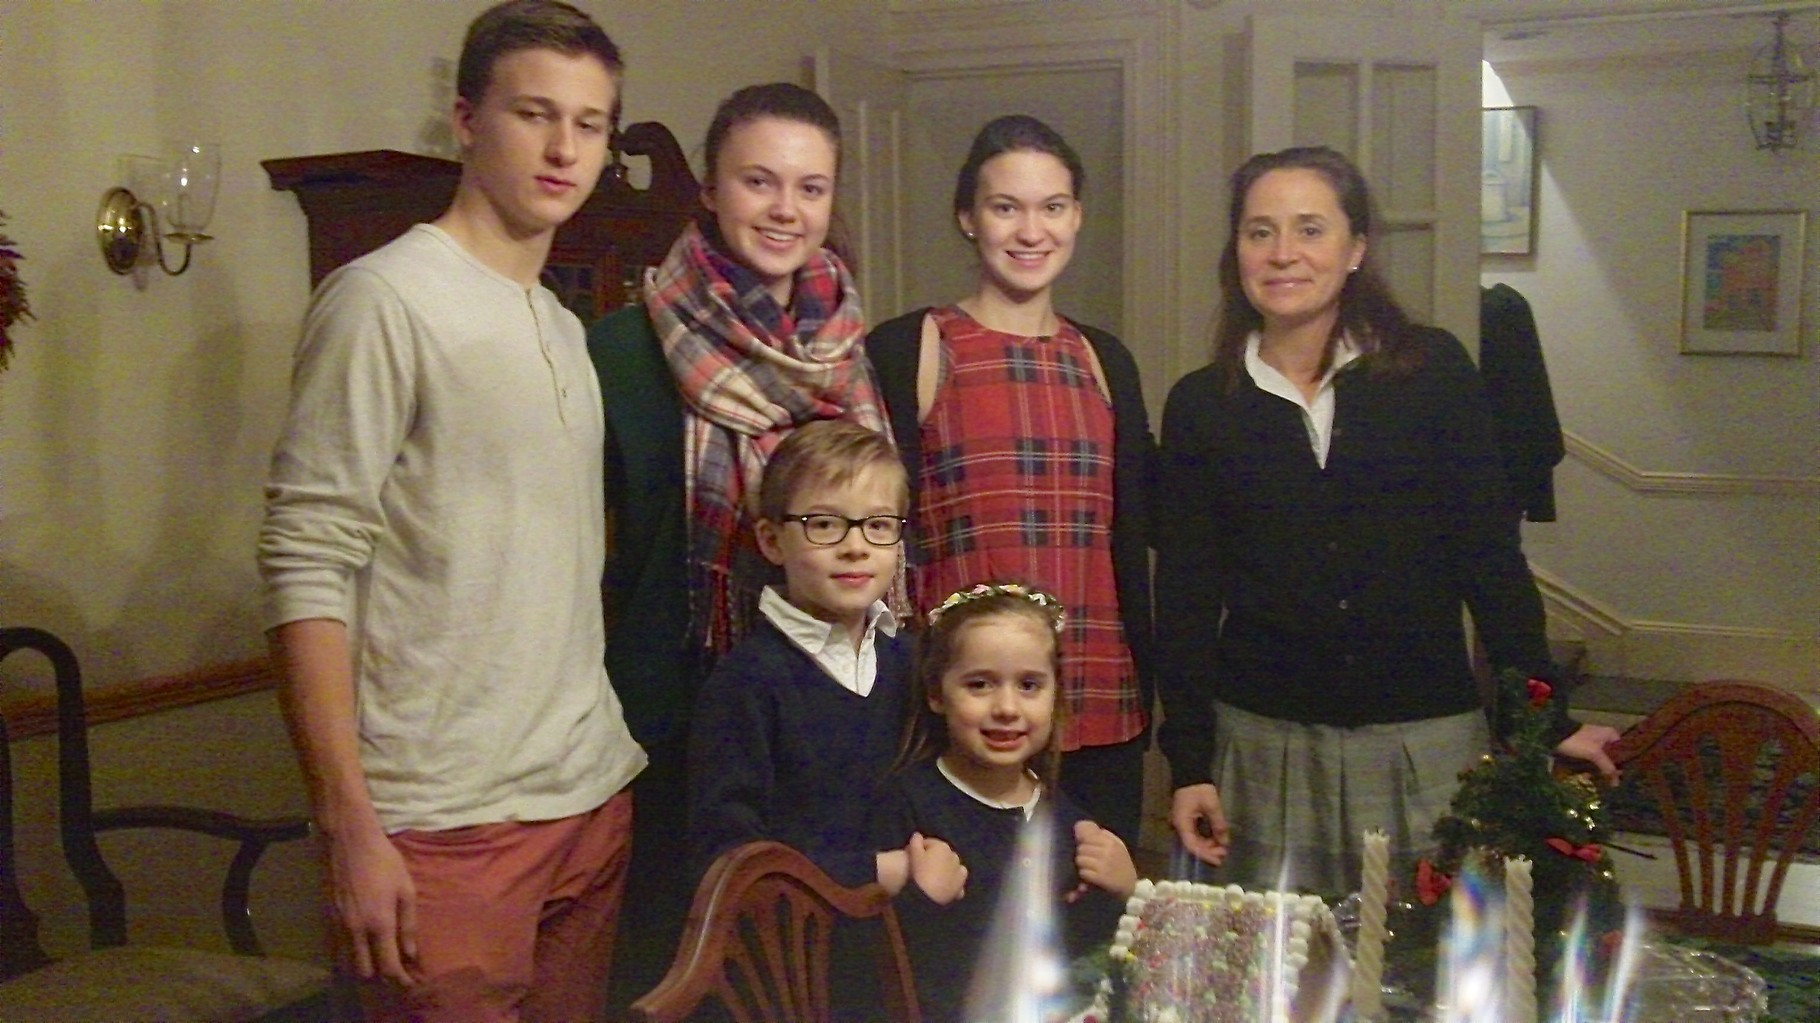 Jack, Kate, Ellie Kagel, Barbara Boylan (Jon's wife), in front Alexander & Charlotte (Jon & Barbara's children)